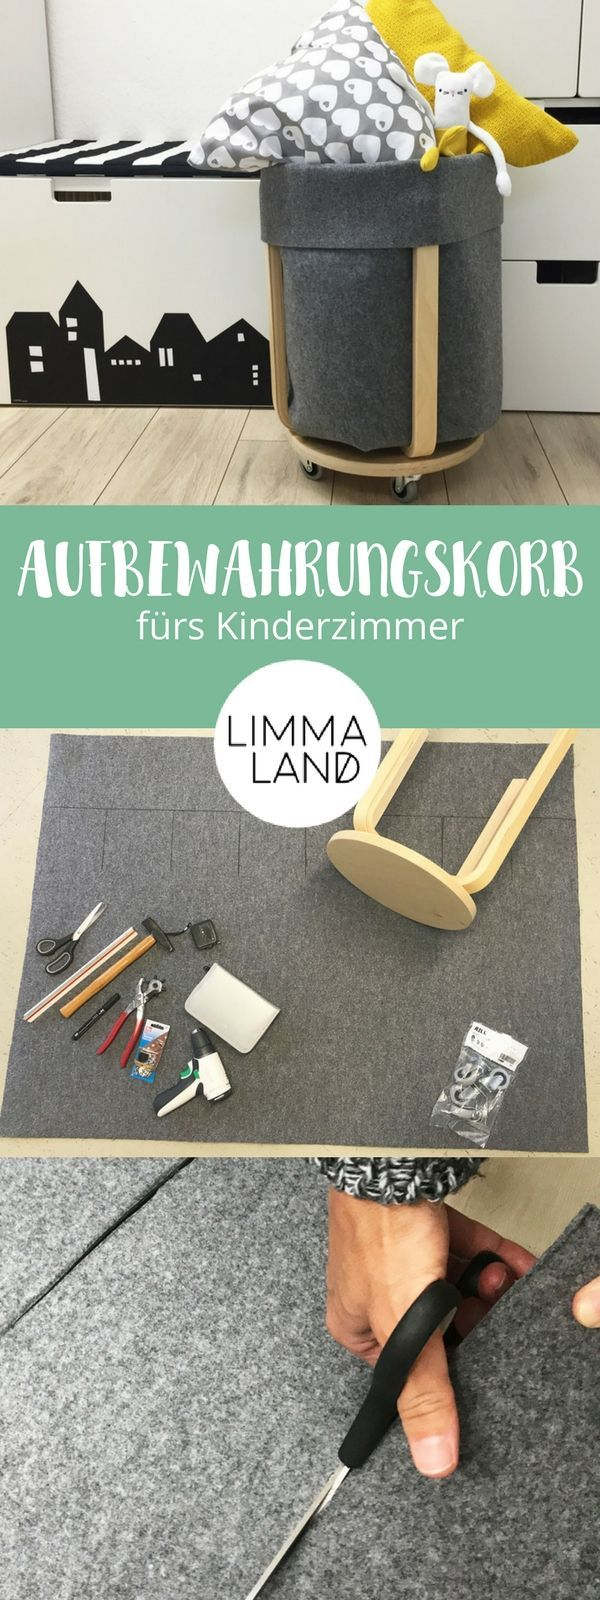 ikea hack filz utensilo basteln statt n hen mit dem frosta hocker kinderzimmer selber machen. Black Bedroom Furniture Sets. Home Design Ideas